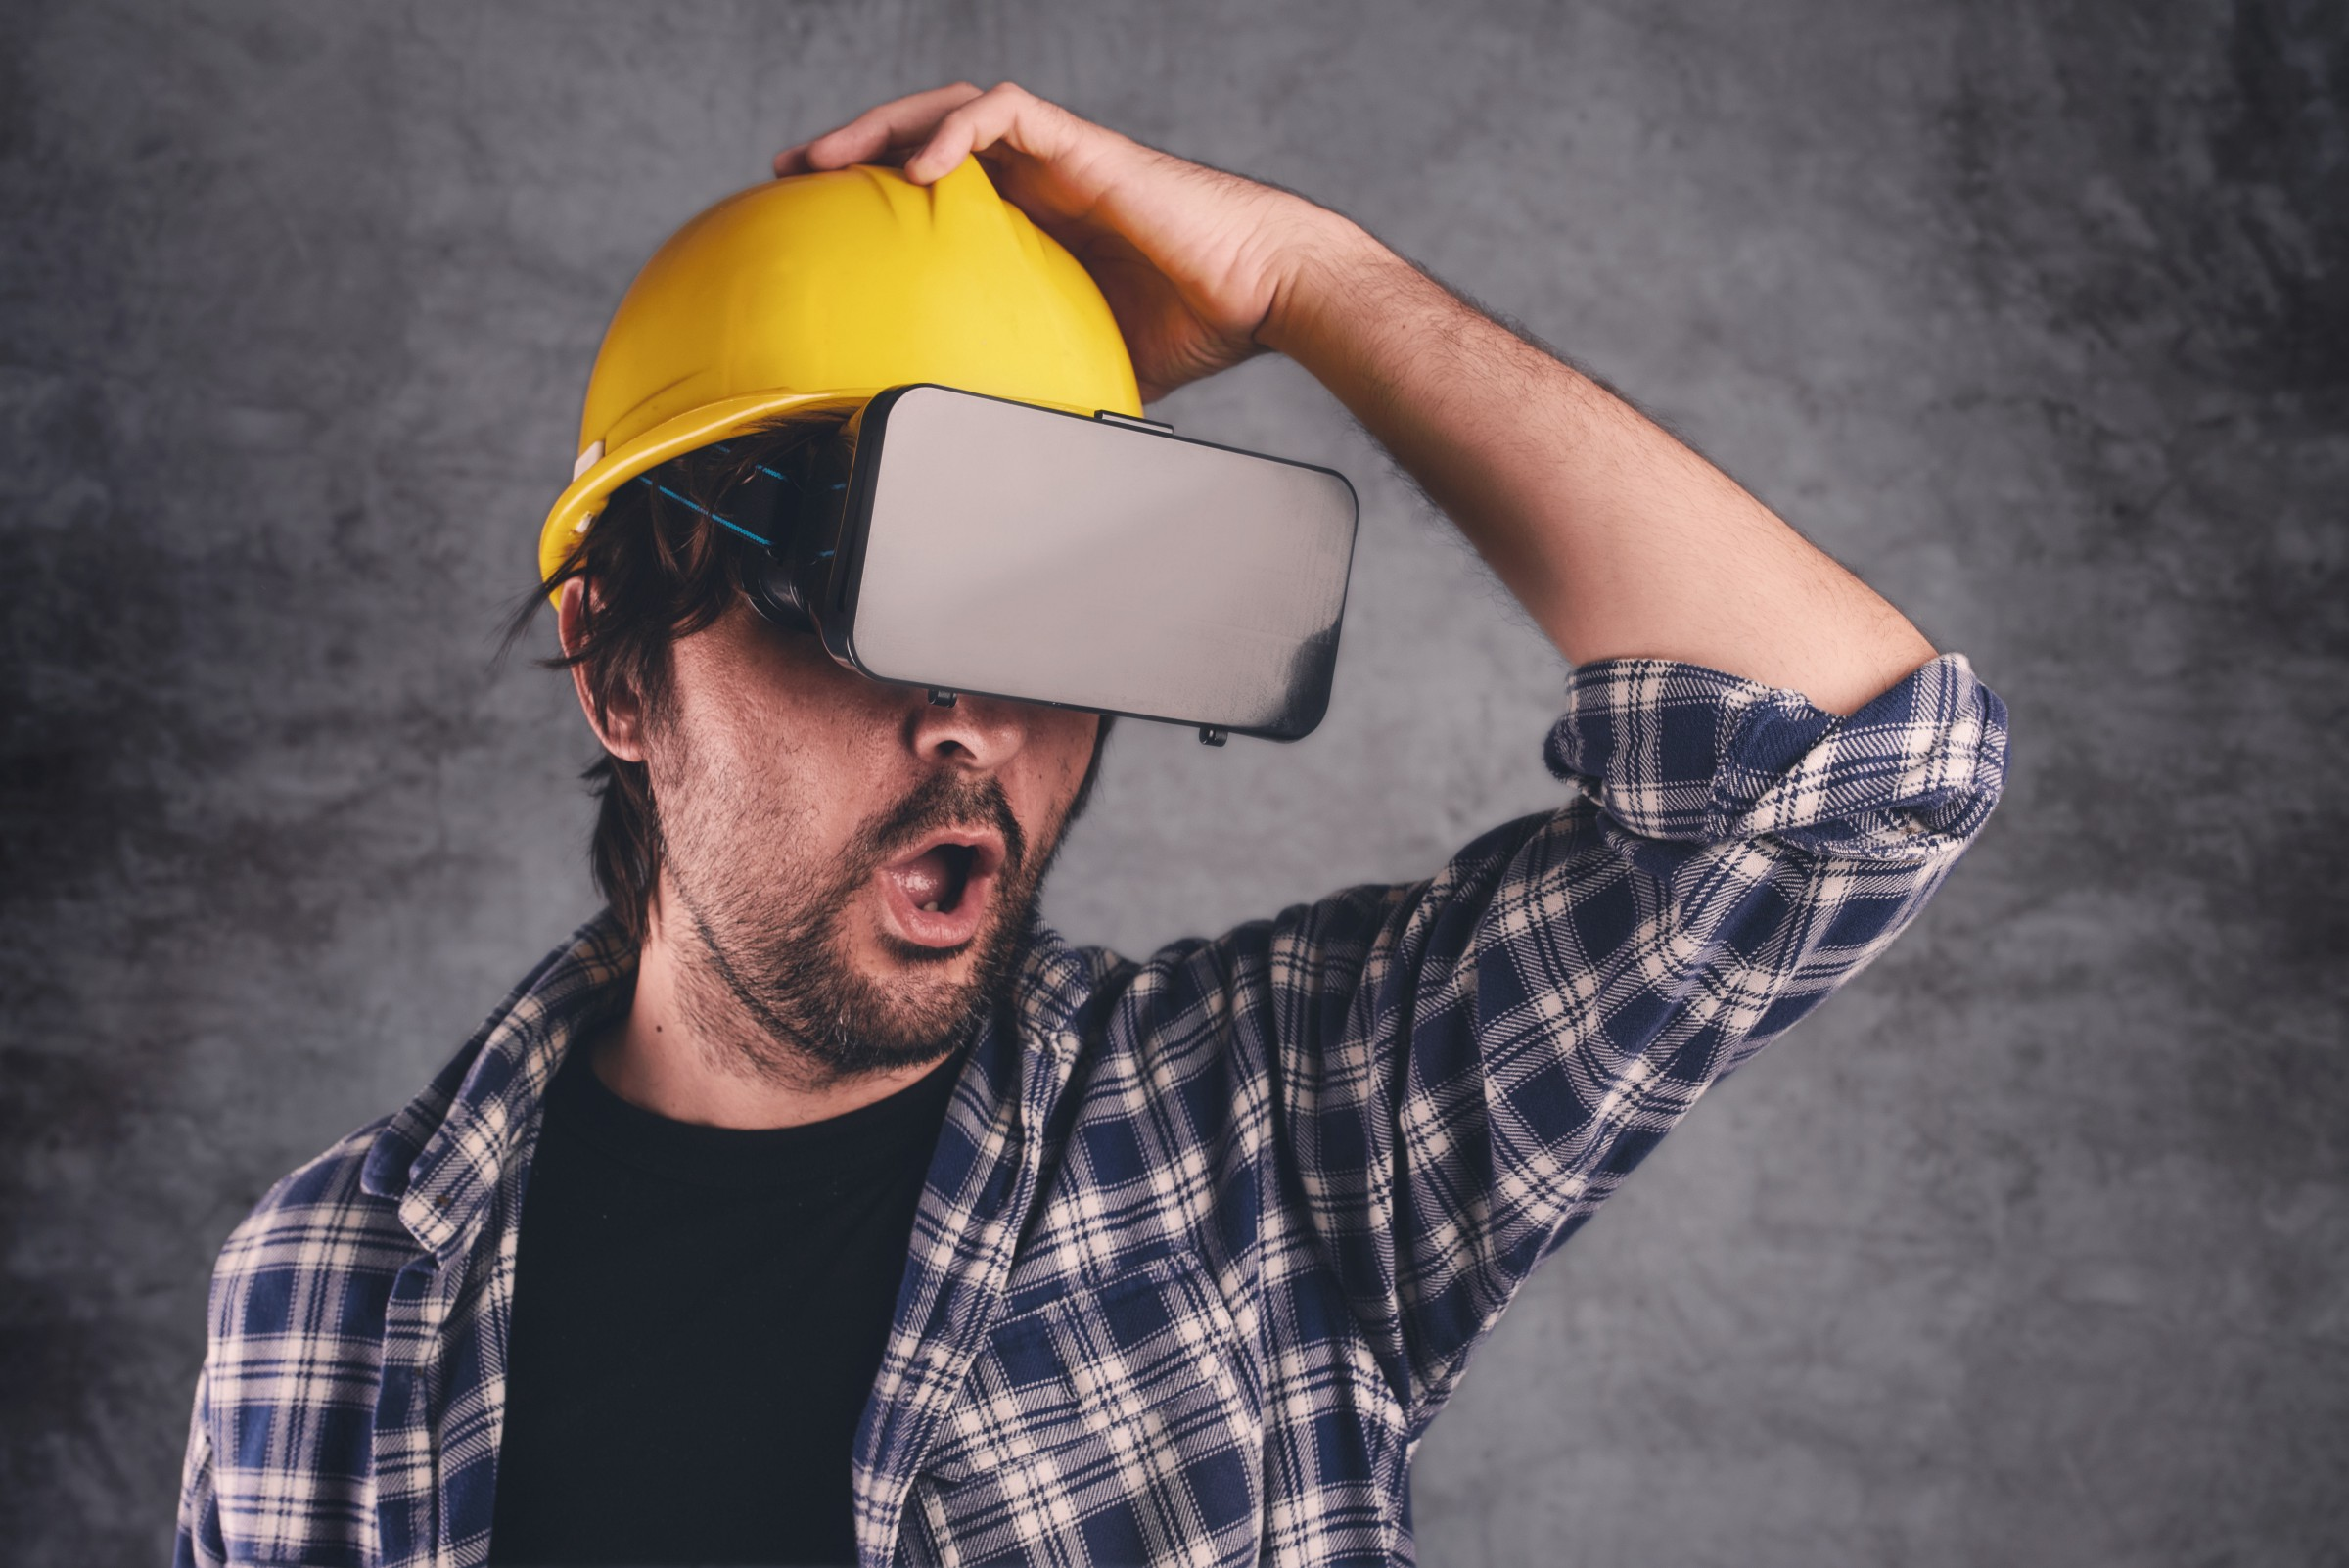 dbebc3924e81 The Construction Professional s guide to Virtual Reality-Headsets